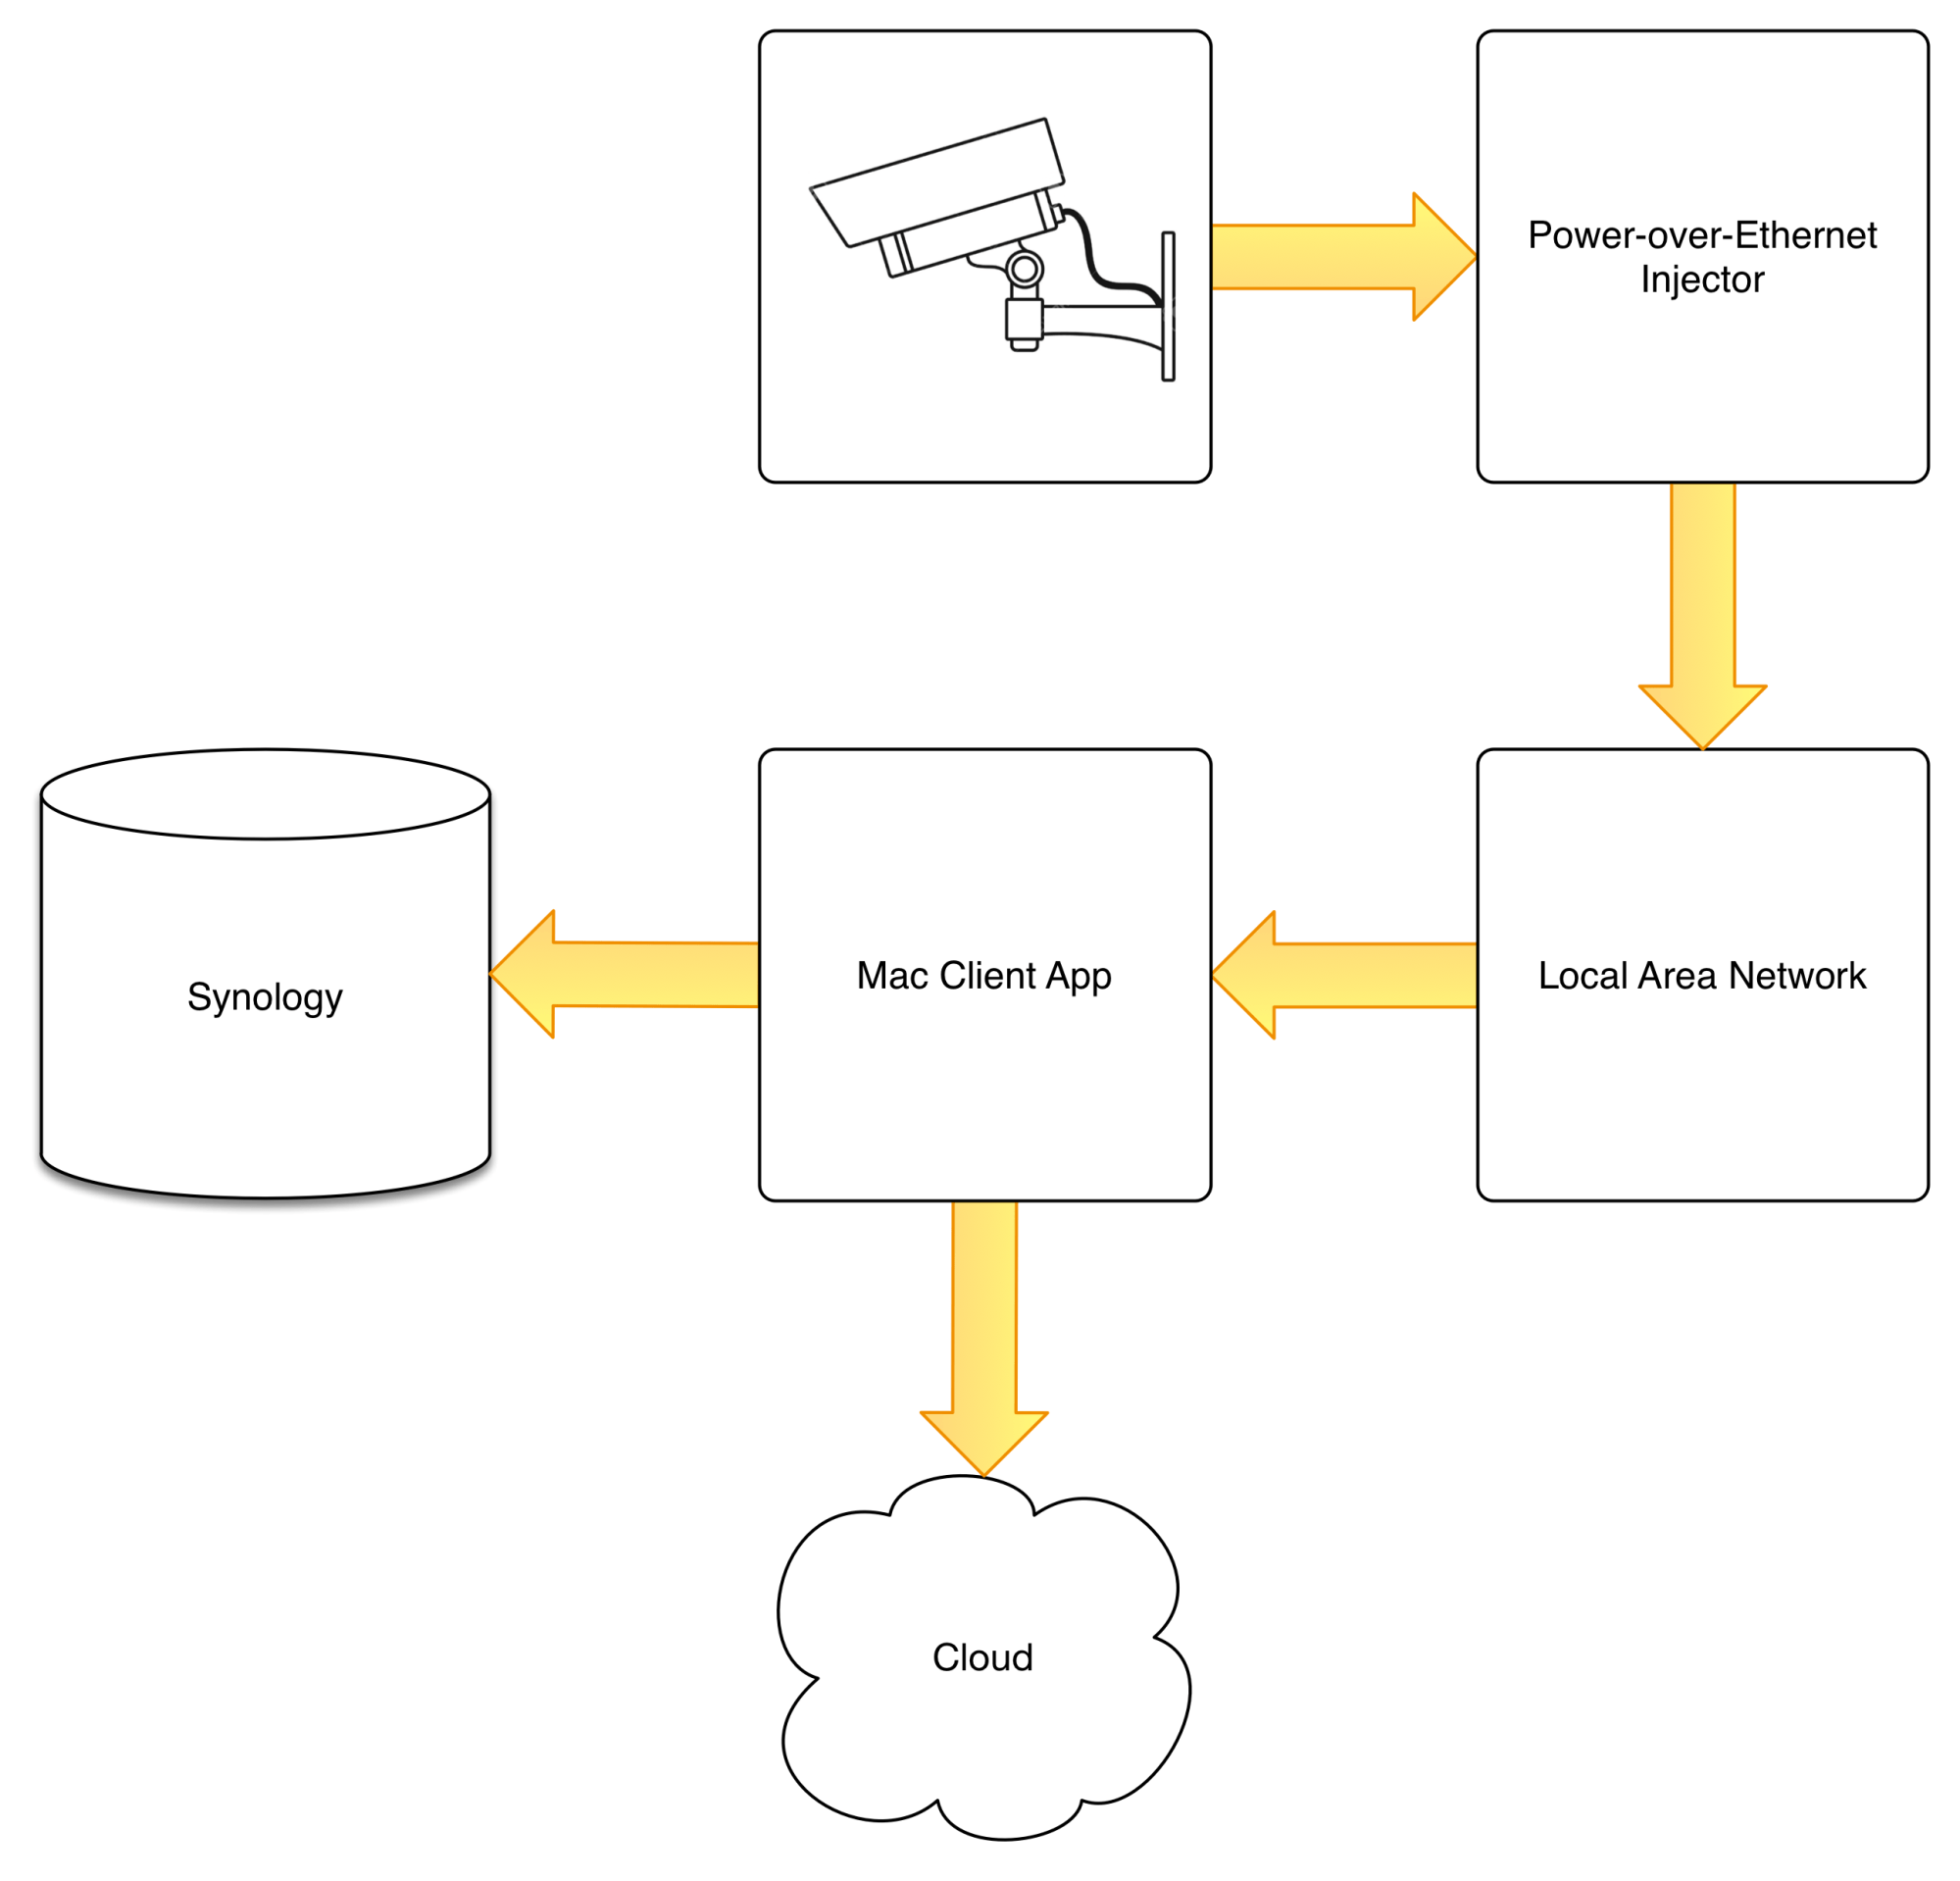 hight resolution of  video clips to other computers or devices synchronized via an s3 bucket in the cloud it very specifically prevents direct access to camera control and